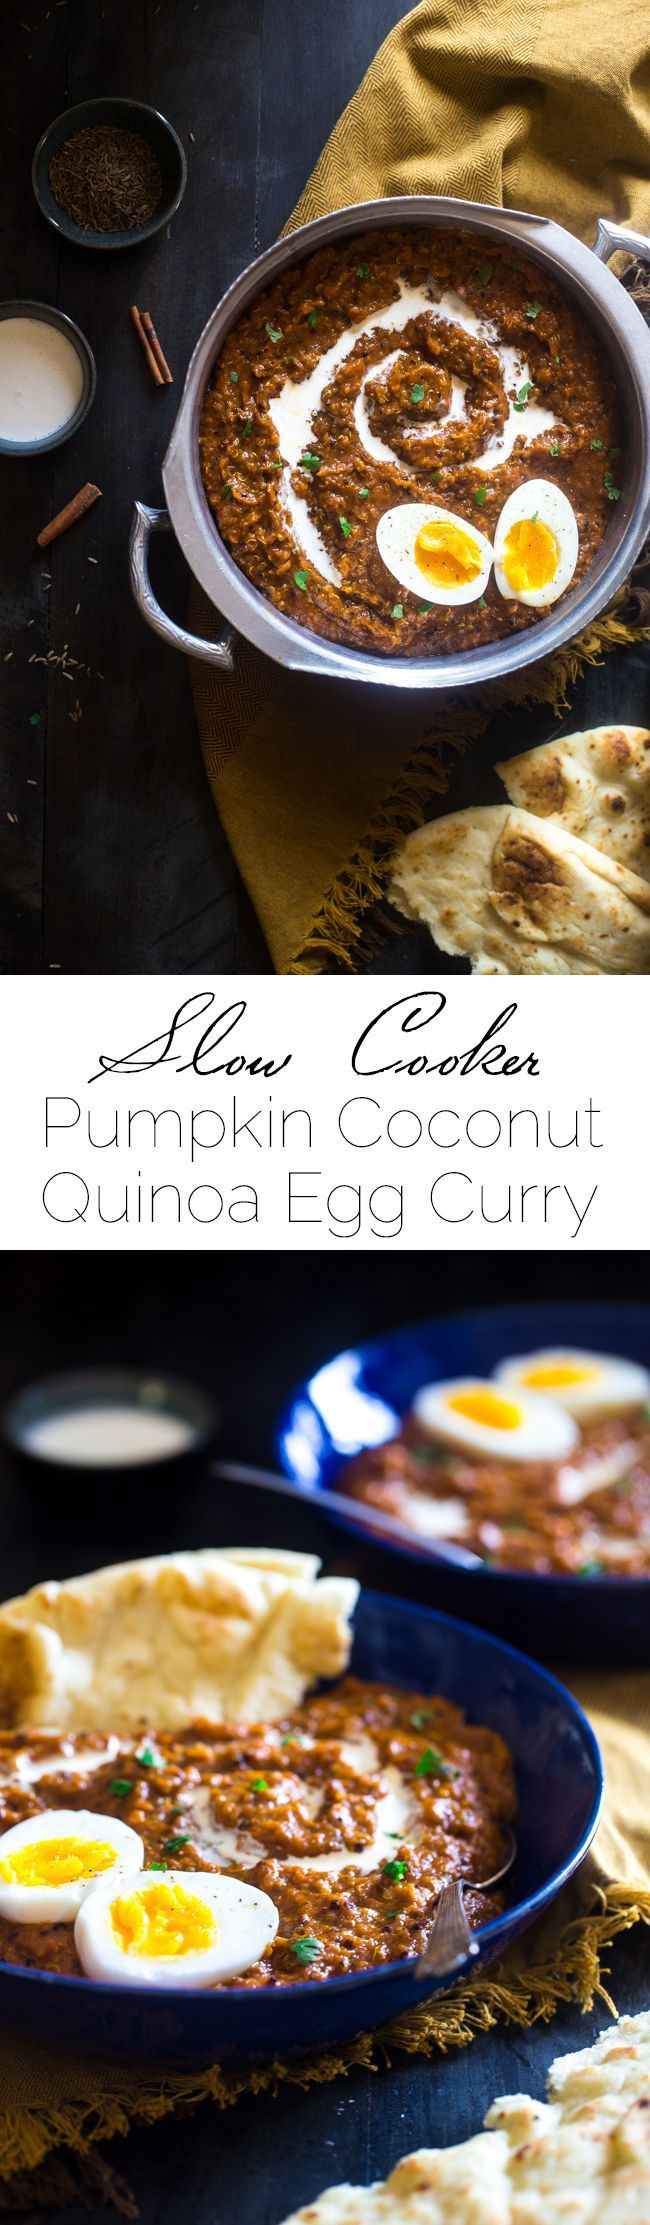 Slow Cooker Pumpkin Coconut Quinoa Egg Curry - This slow cooker curry is mixed with coconut milk, pumpkin, quinoa and topped with boiled eggs for an easy, healthy, fall meal for meatless Monday. Easily vegan friendly!   Foodfaithfitness.com   @FoodFaithFitness